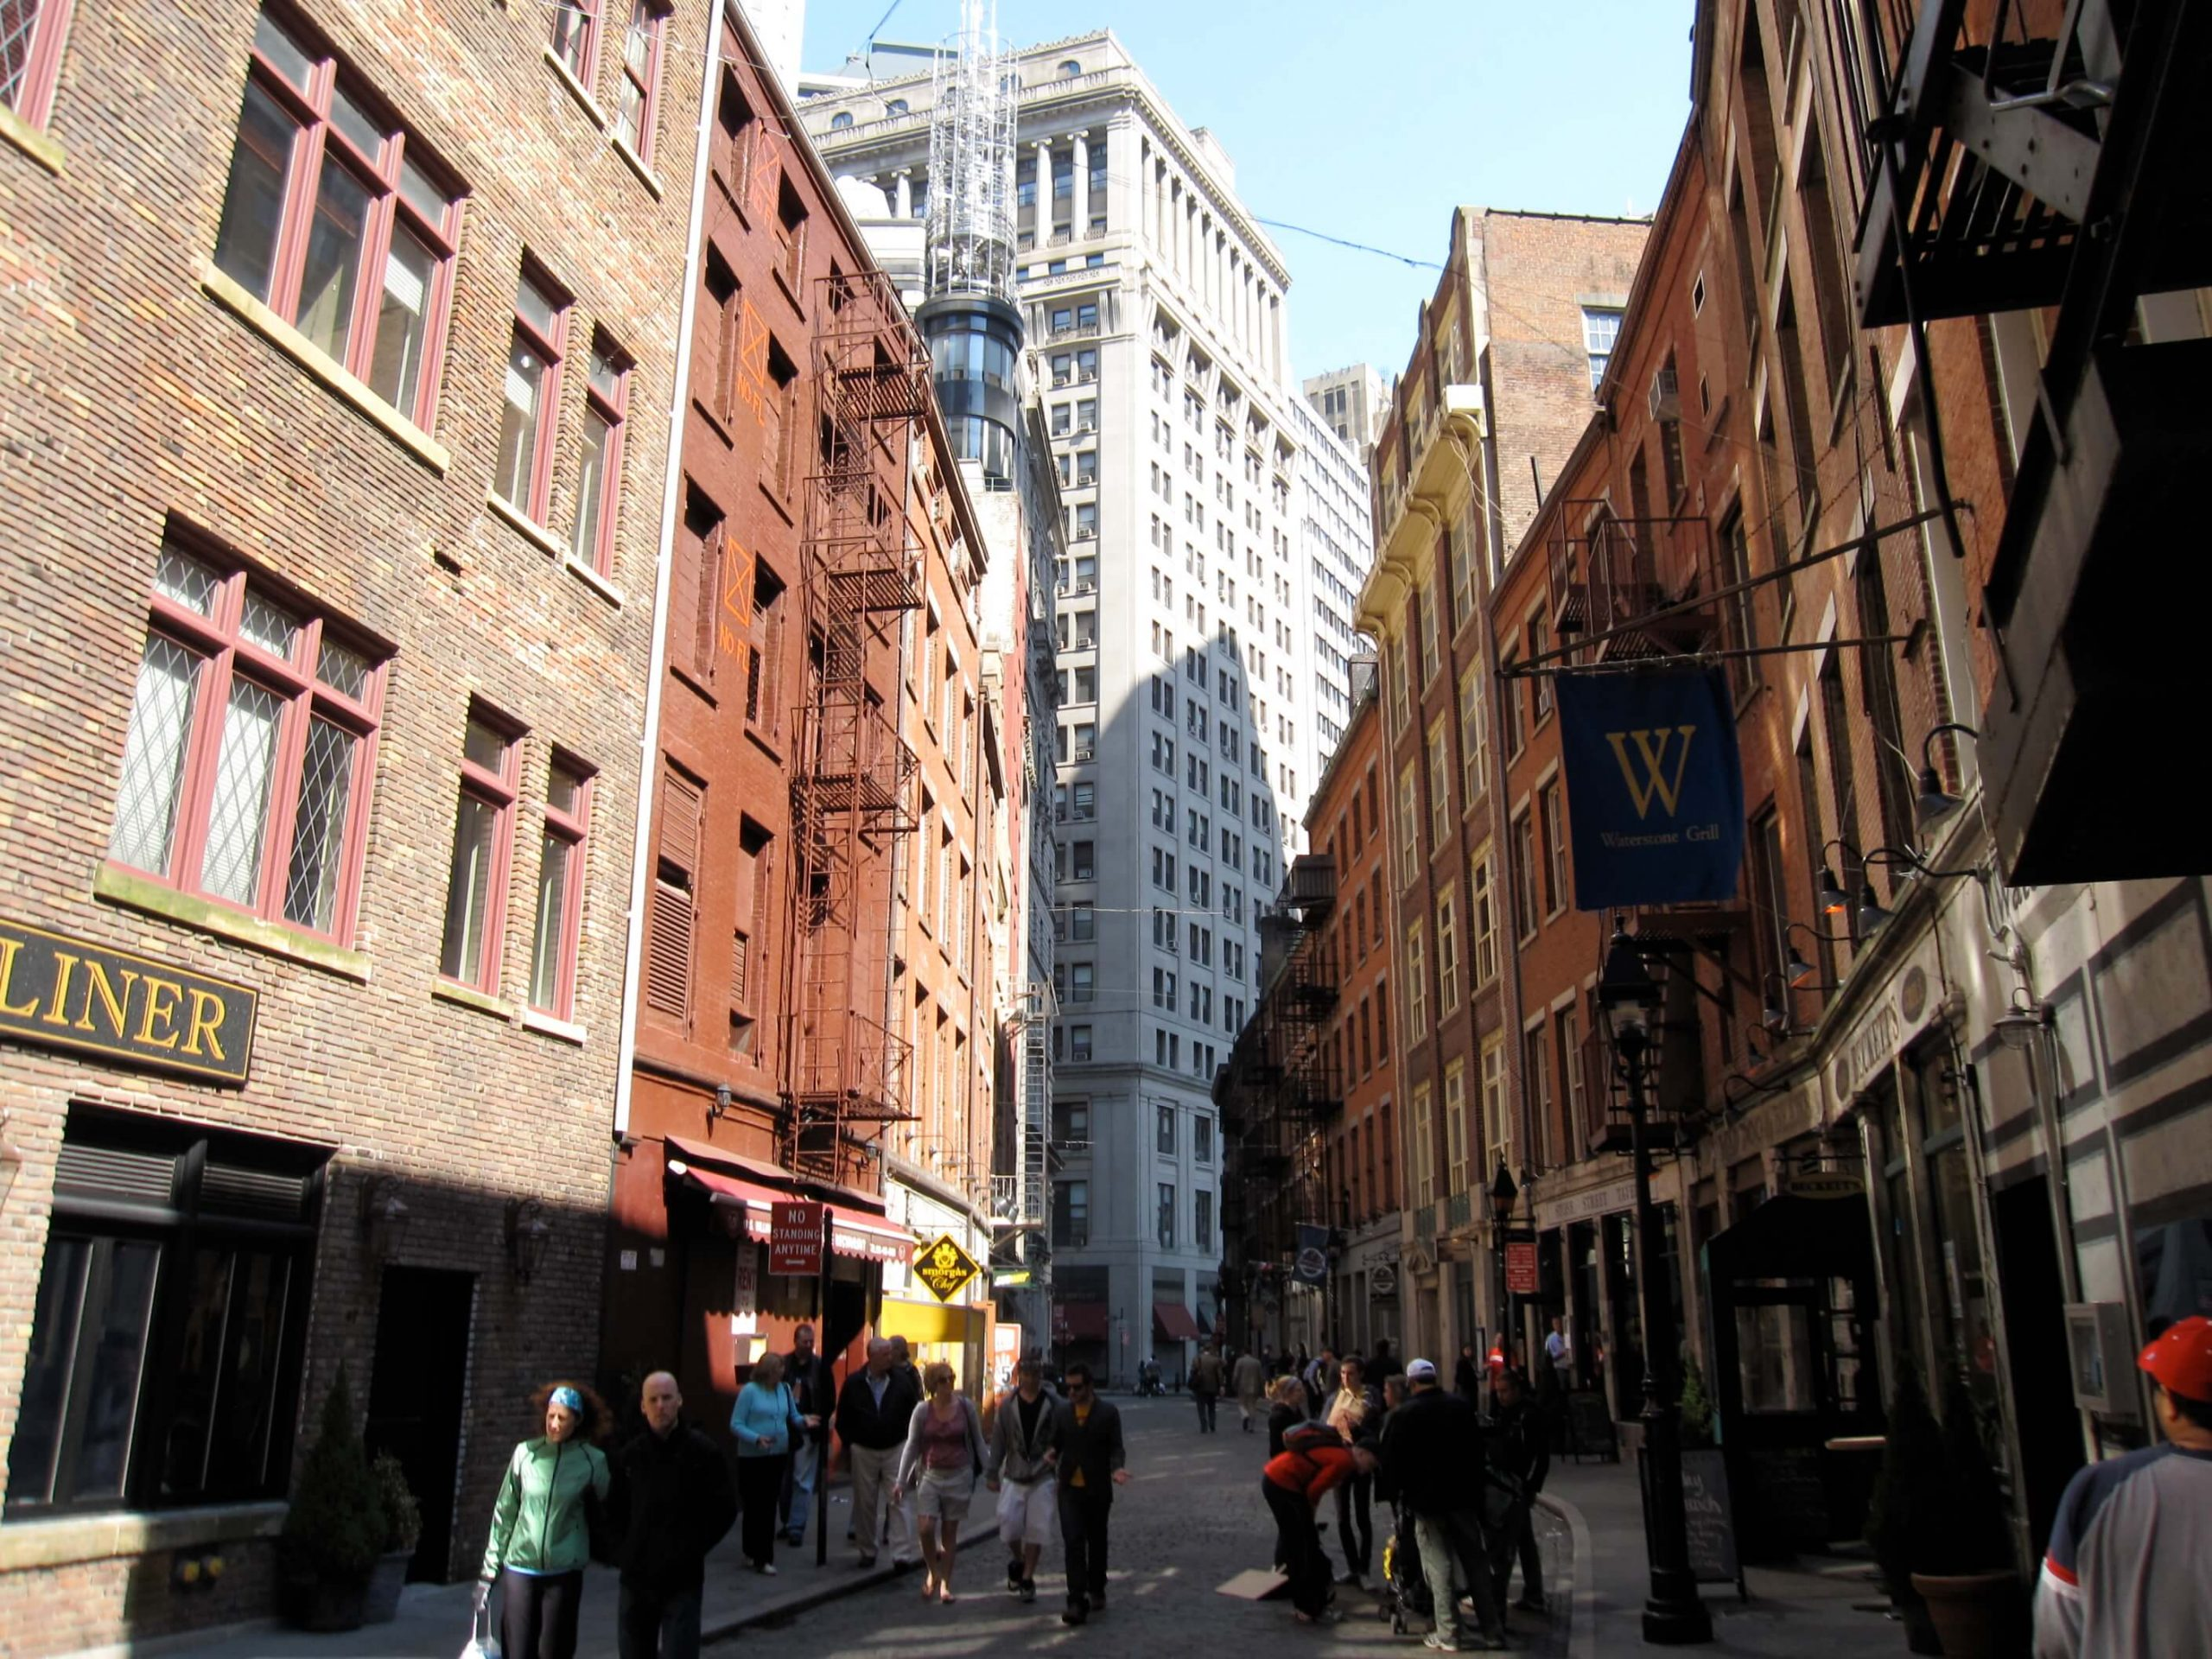 A Trip Down Stone Street: Food, Architecture, History in NYC